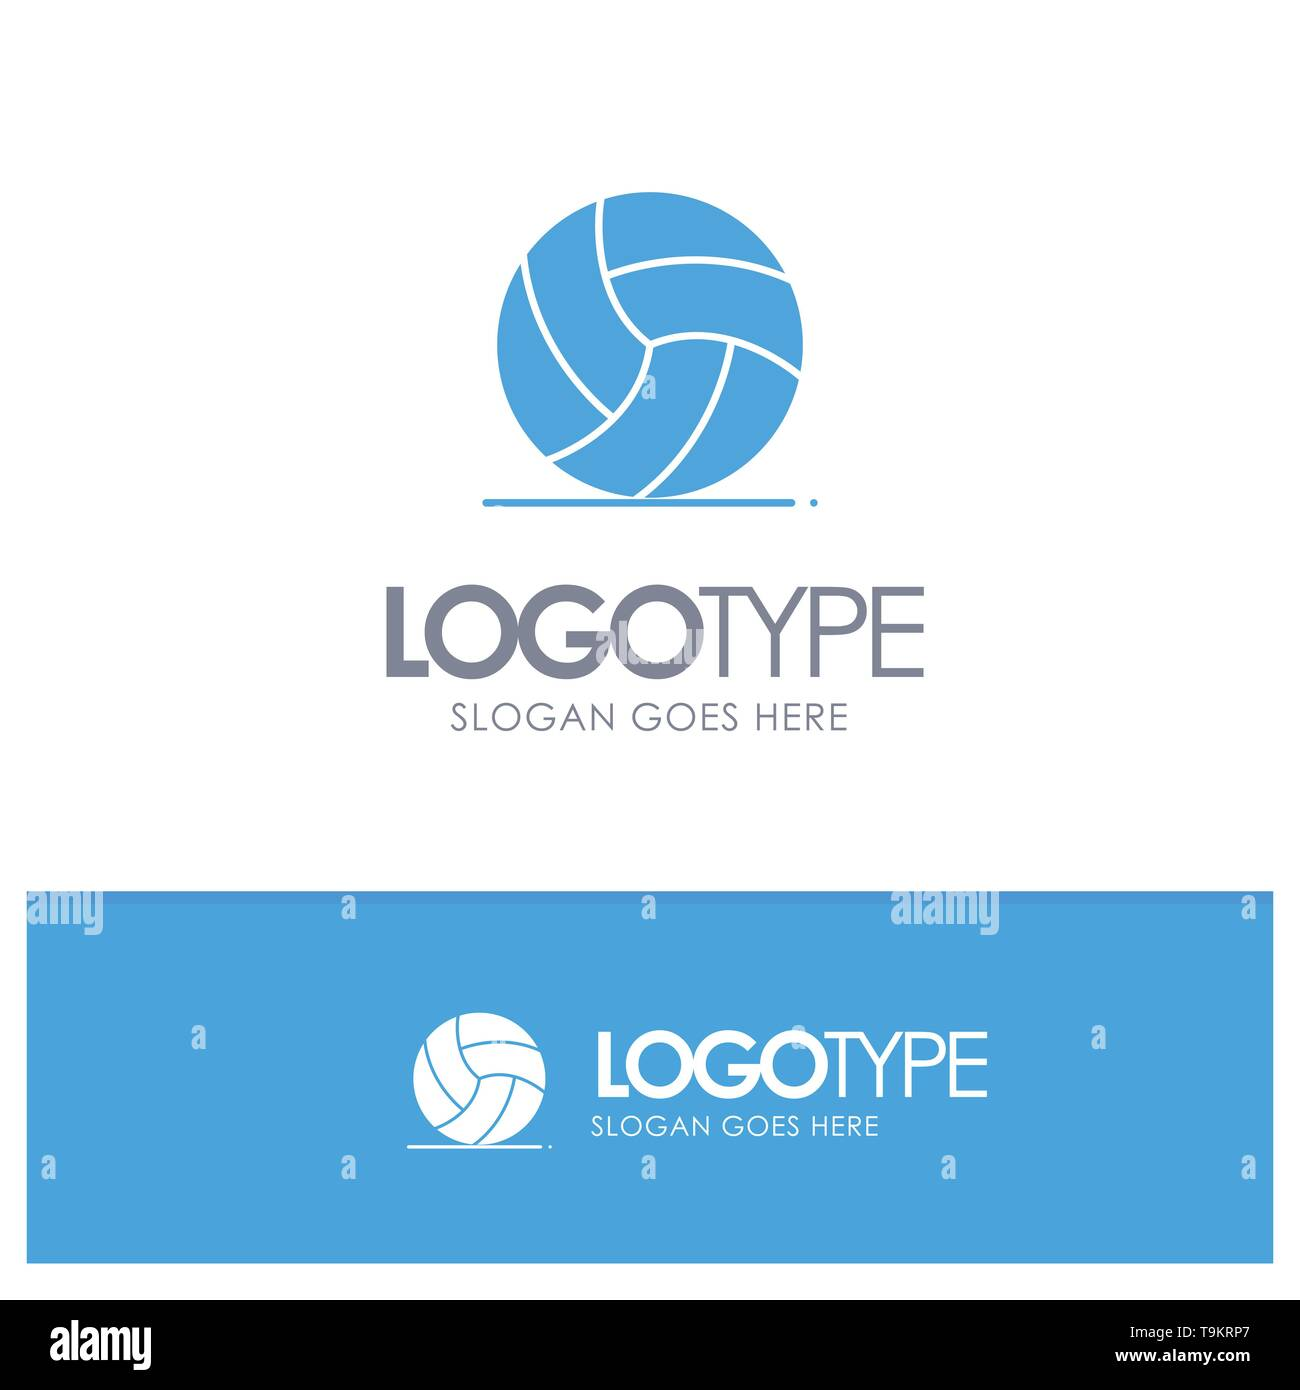 Football, Ireland, Game, Sport Blue Solid Logo with place for tagline - Stock Image